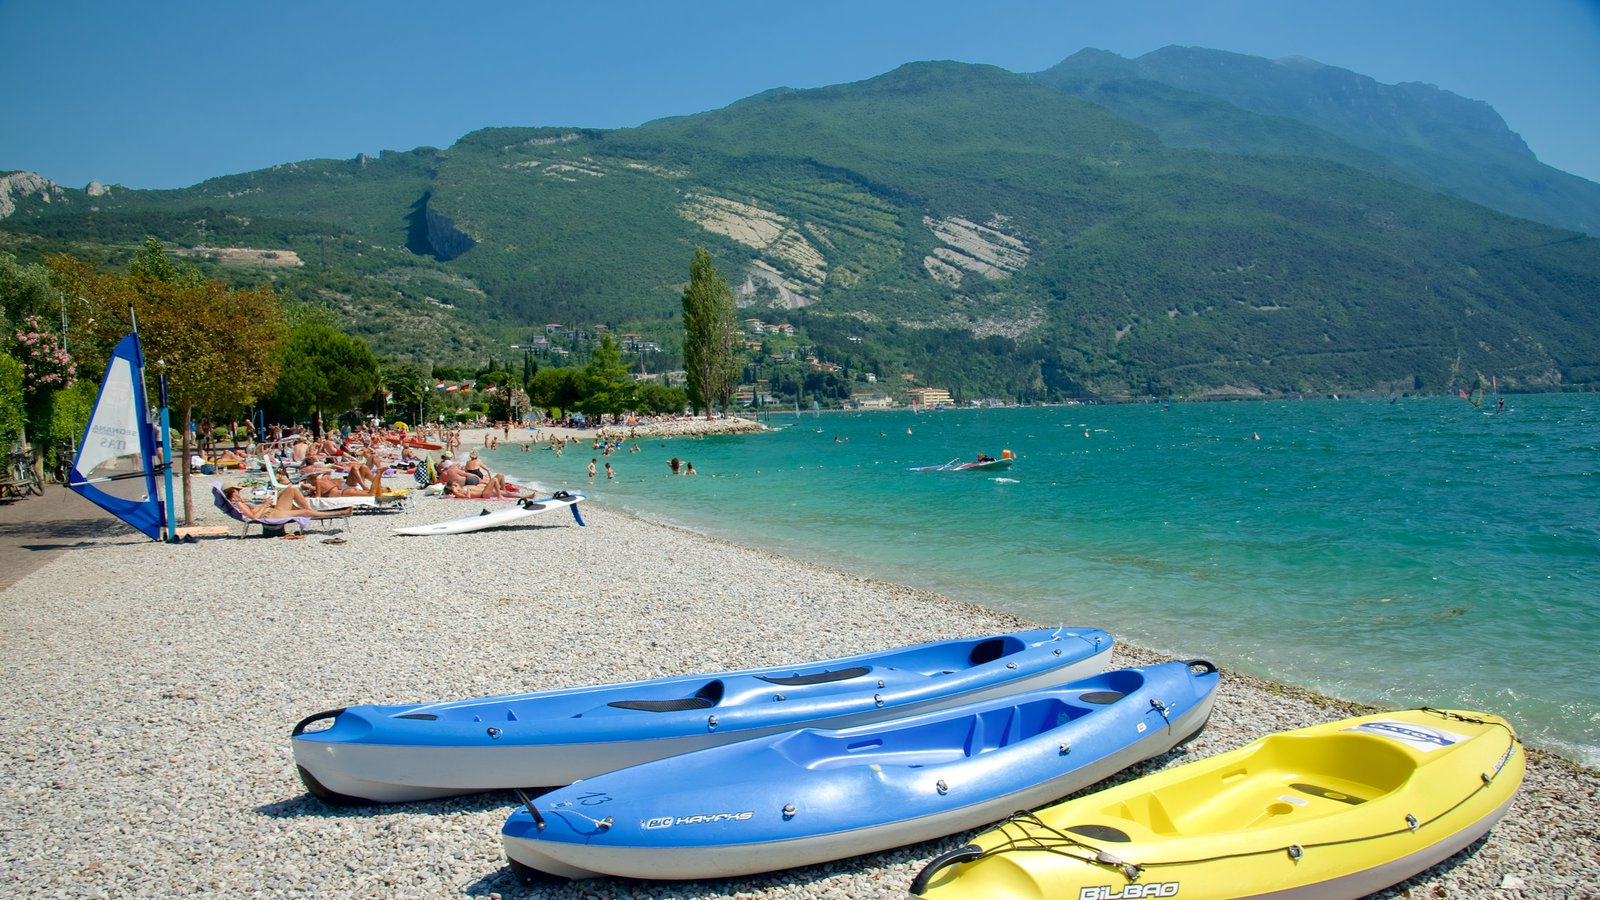 Nago-Torbole showing kayaking or canoeing, a pebble beach and general coastal views